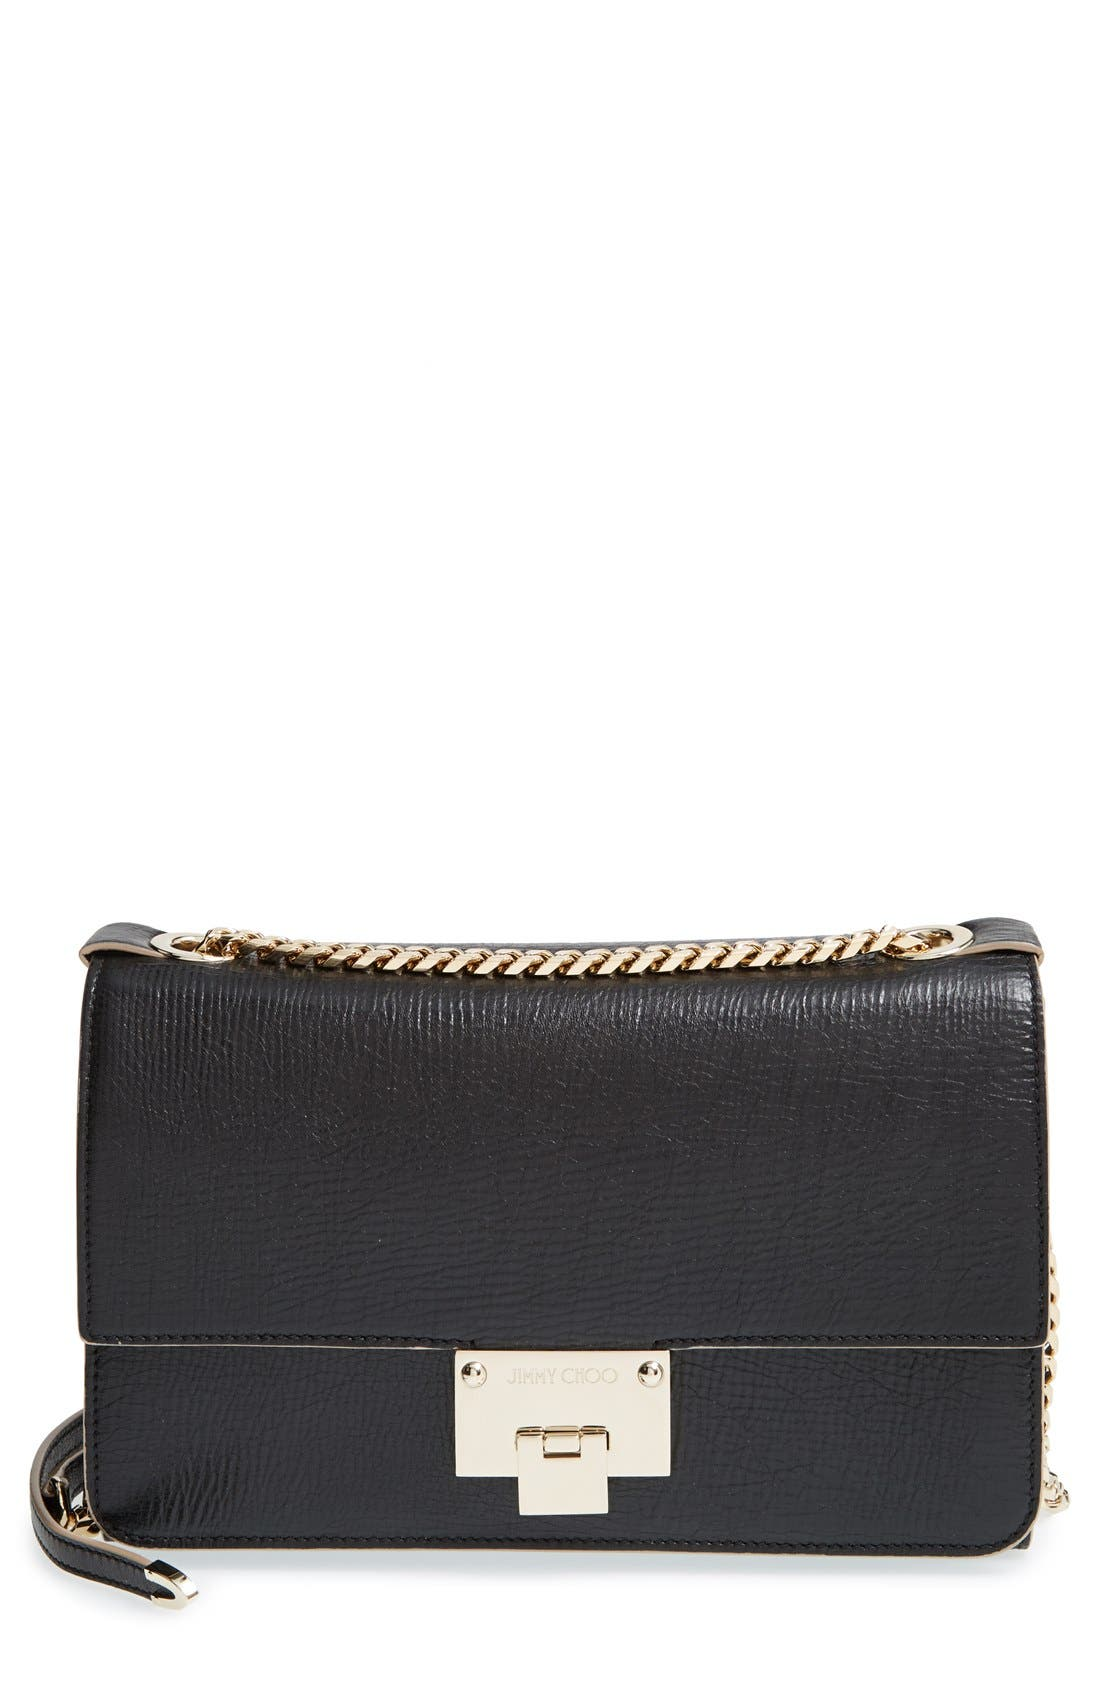 Main Image - Jimmy Choo 'Rebel' Washed Leather Shoulder Bag